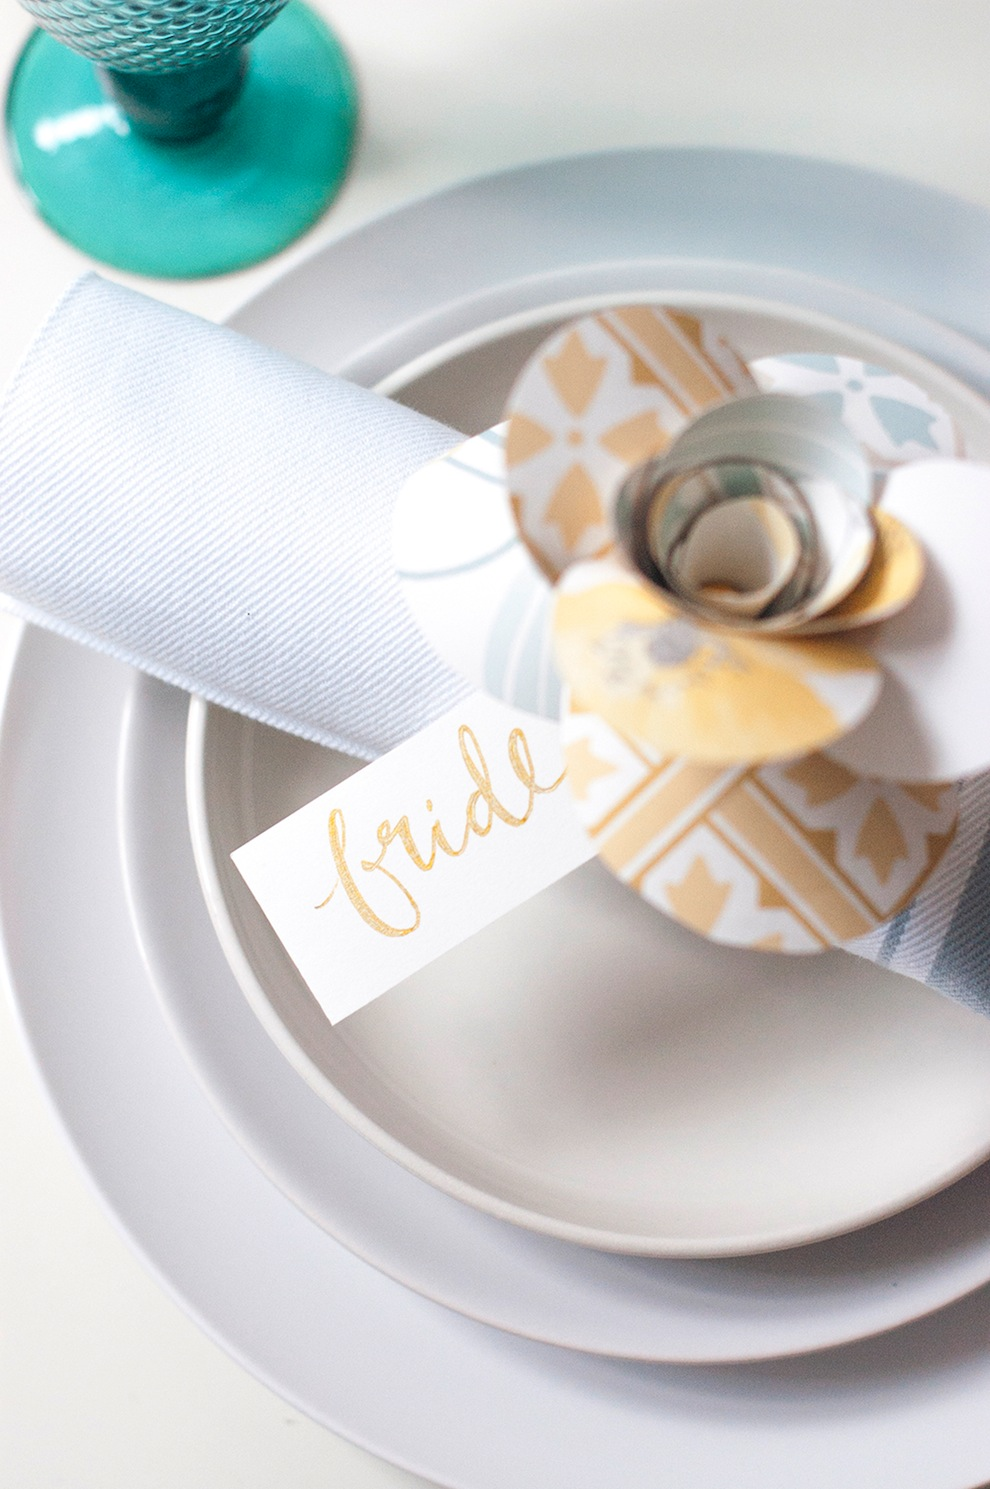 MbM_LAURA-ASHLEY_PLACE-SETTINGS-13